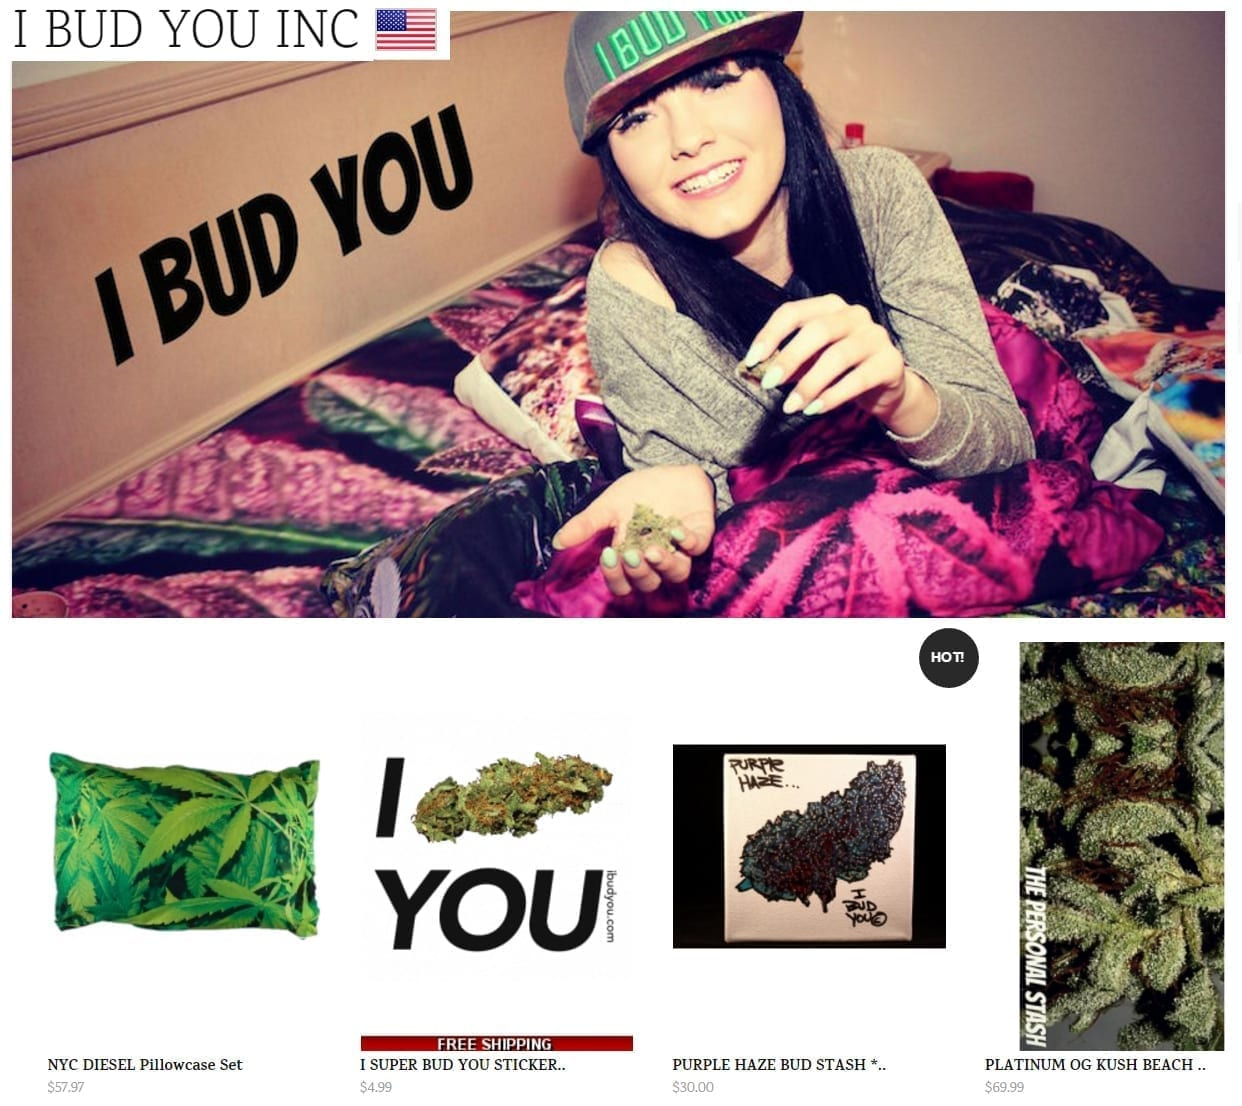 stoner fashion by i bud you